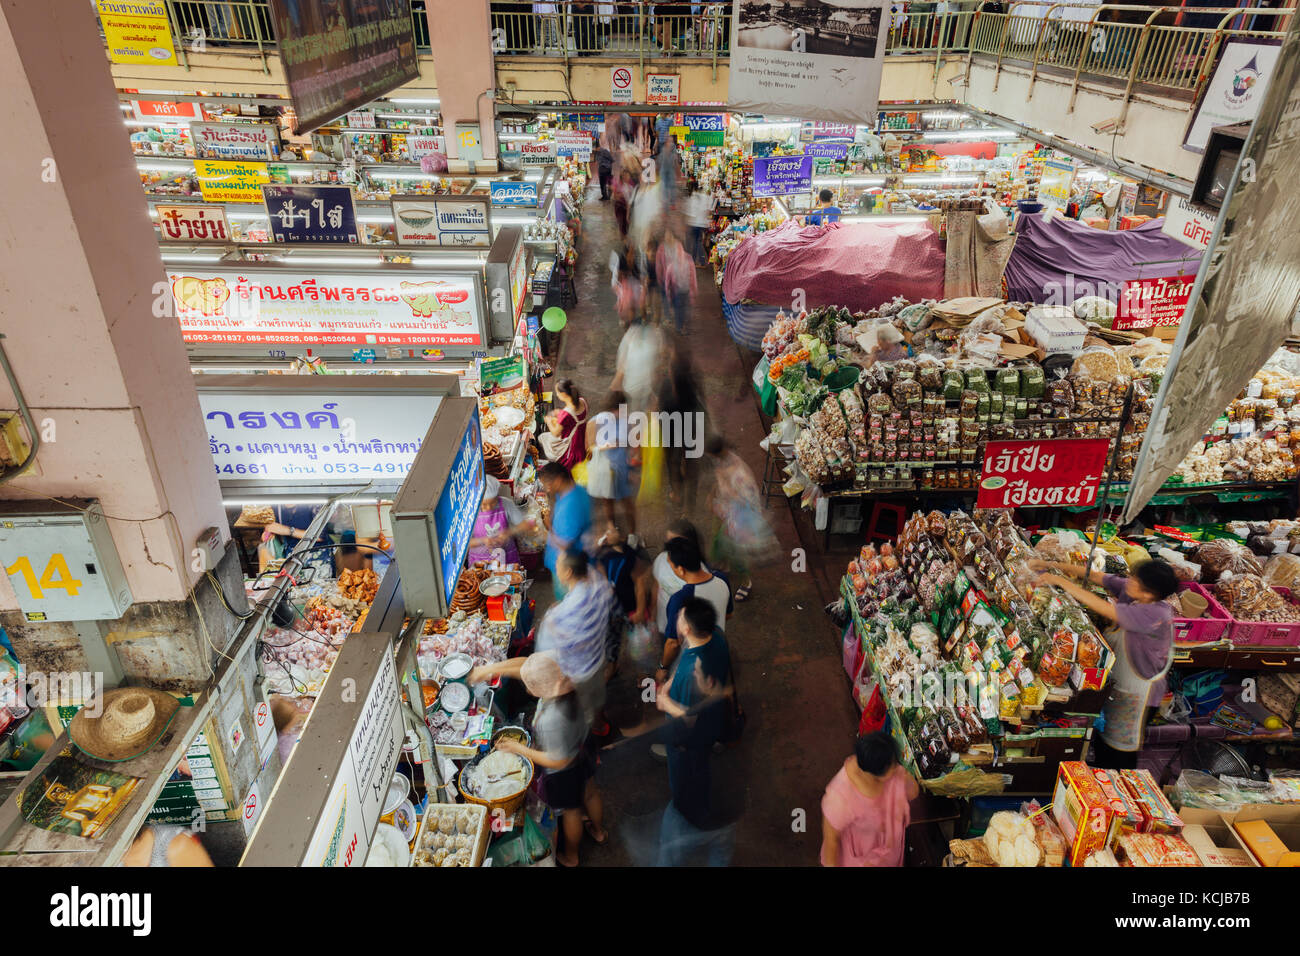 Chiang Mai, Thailand - August 27, 2016:  A group customers crowds near a food stall at the Warorot market on August - Stock Image